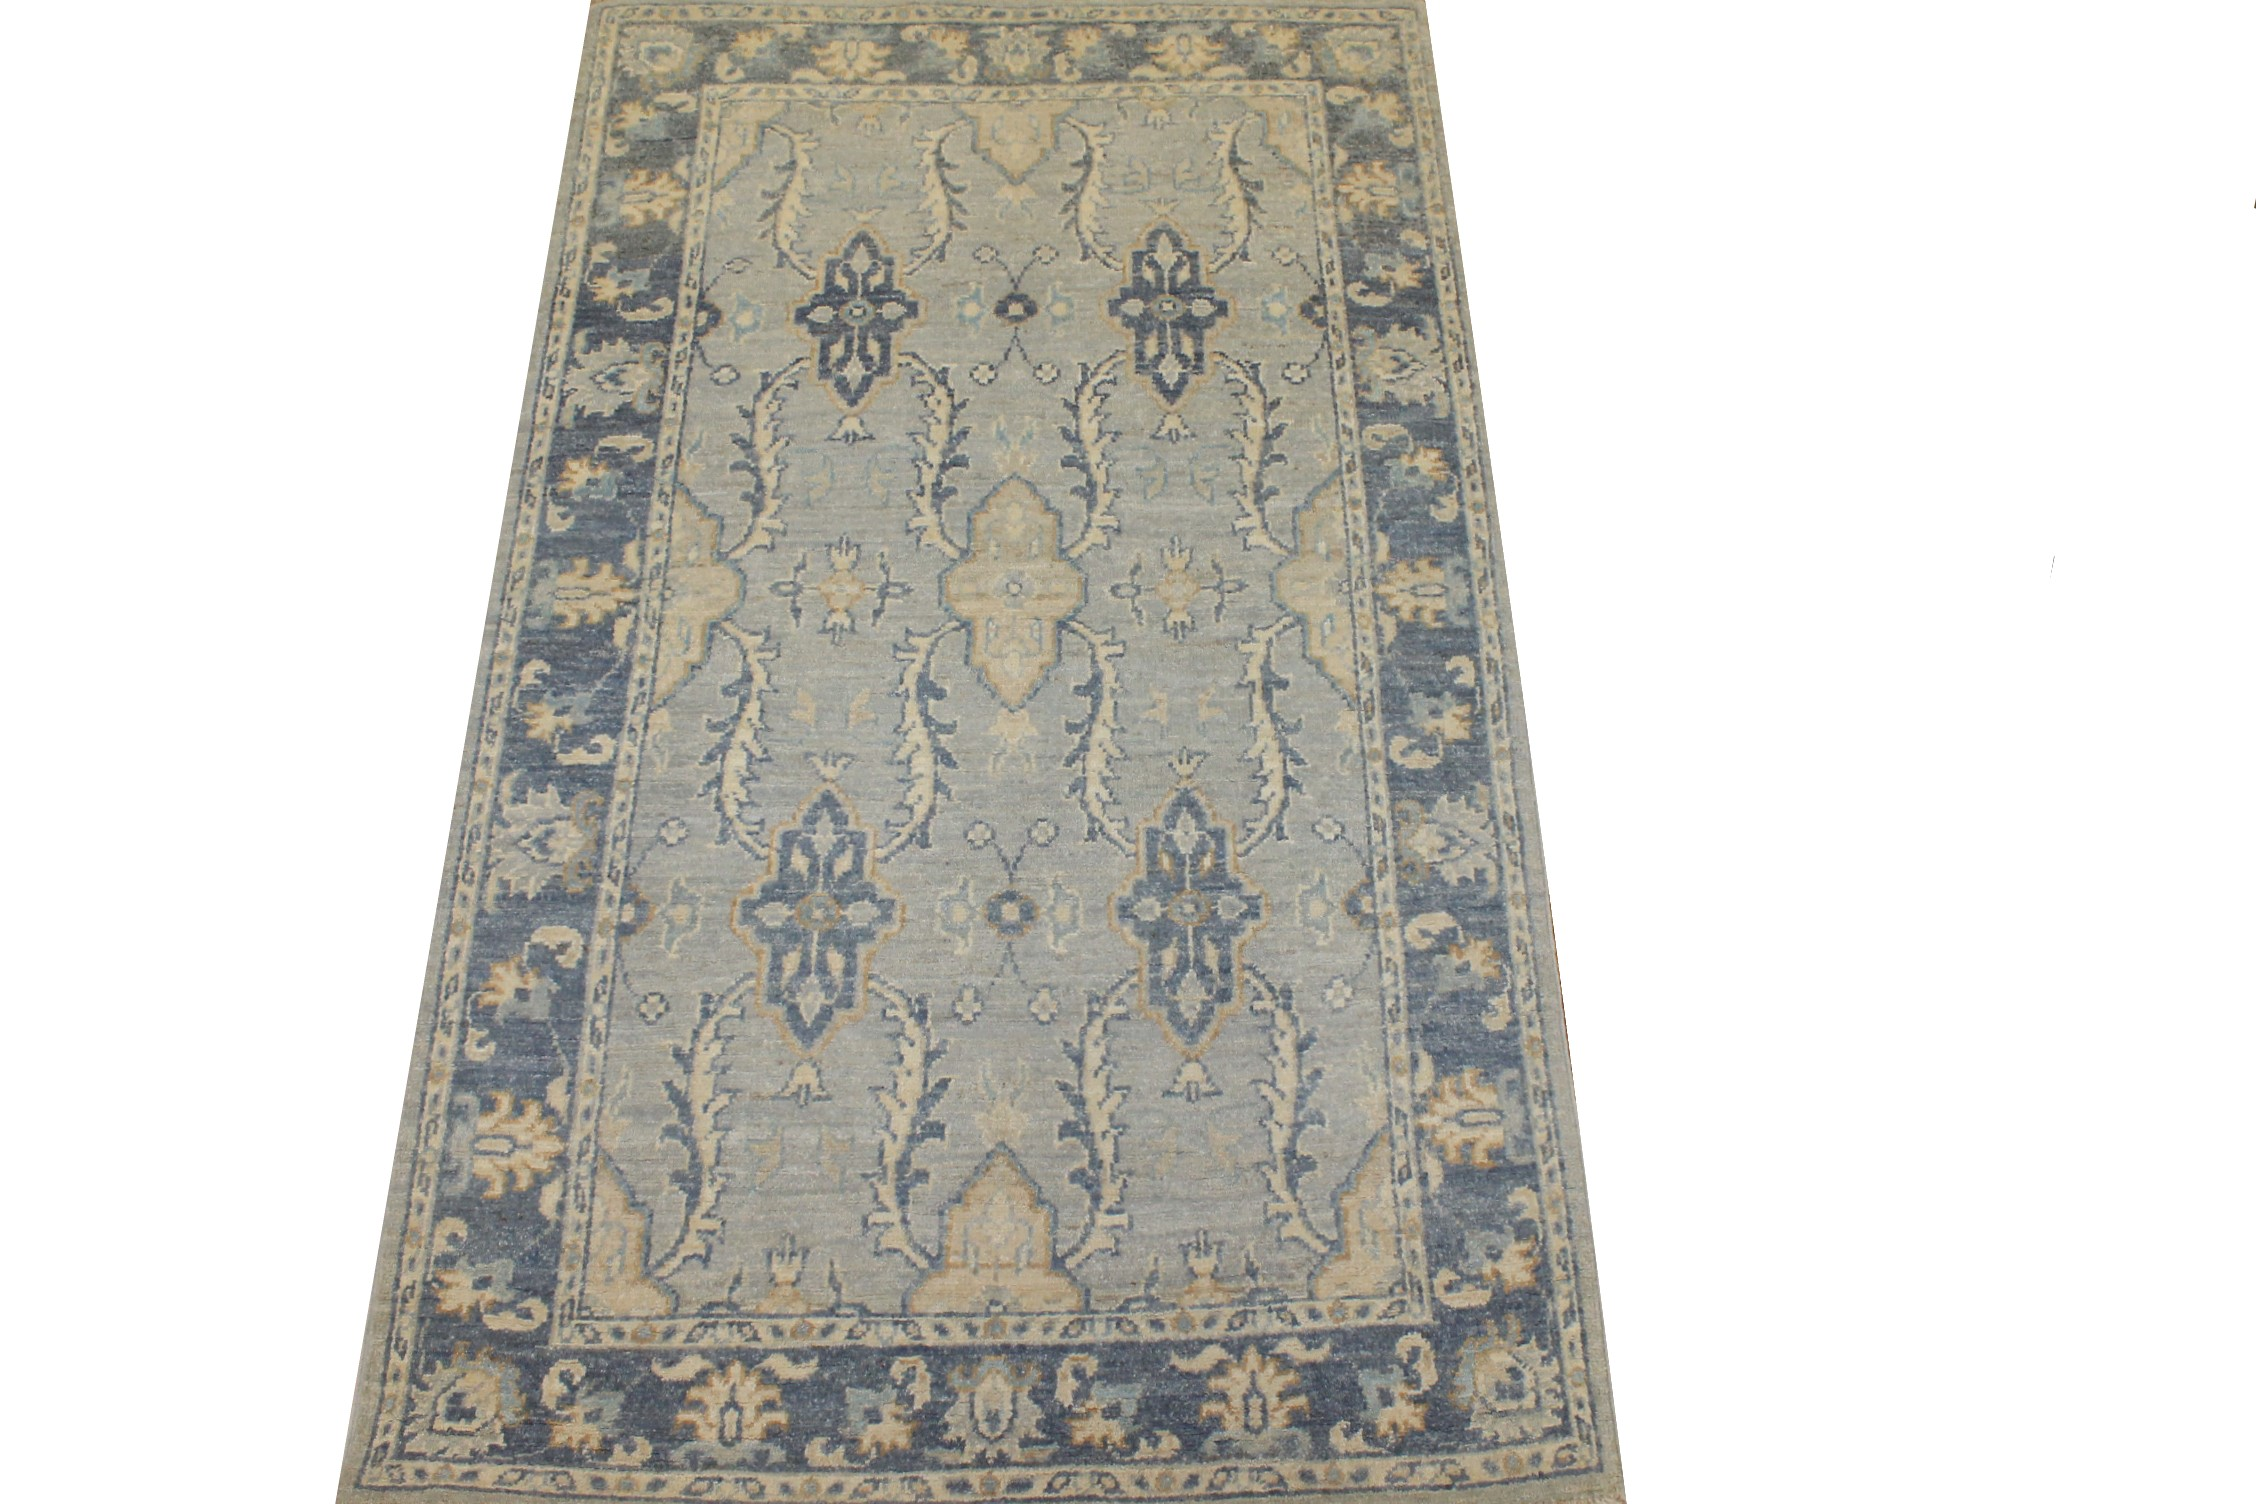 3x5 Peshawar Hand Knotted Wool Area Rug - MR025346